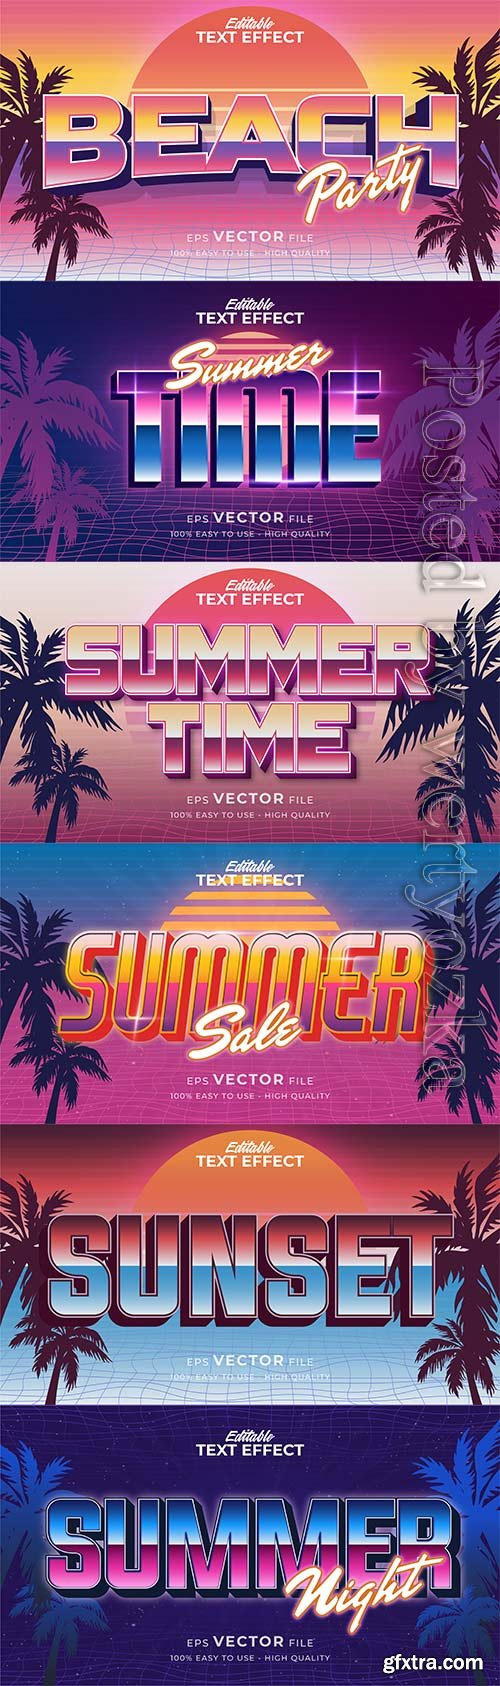 Text style effect, retro summer text in grunge style vol 9